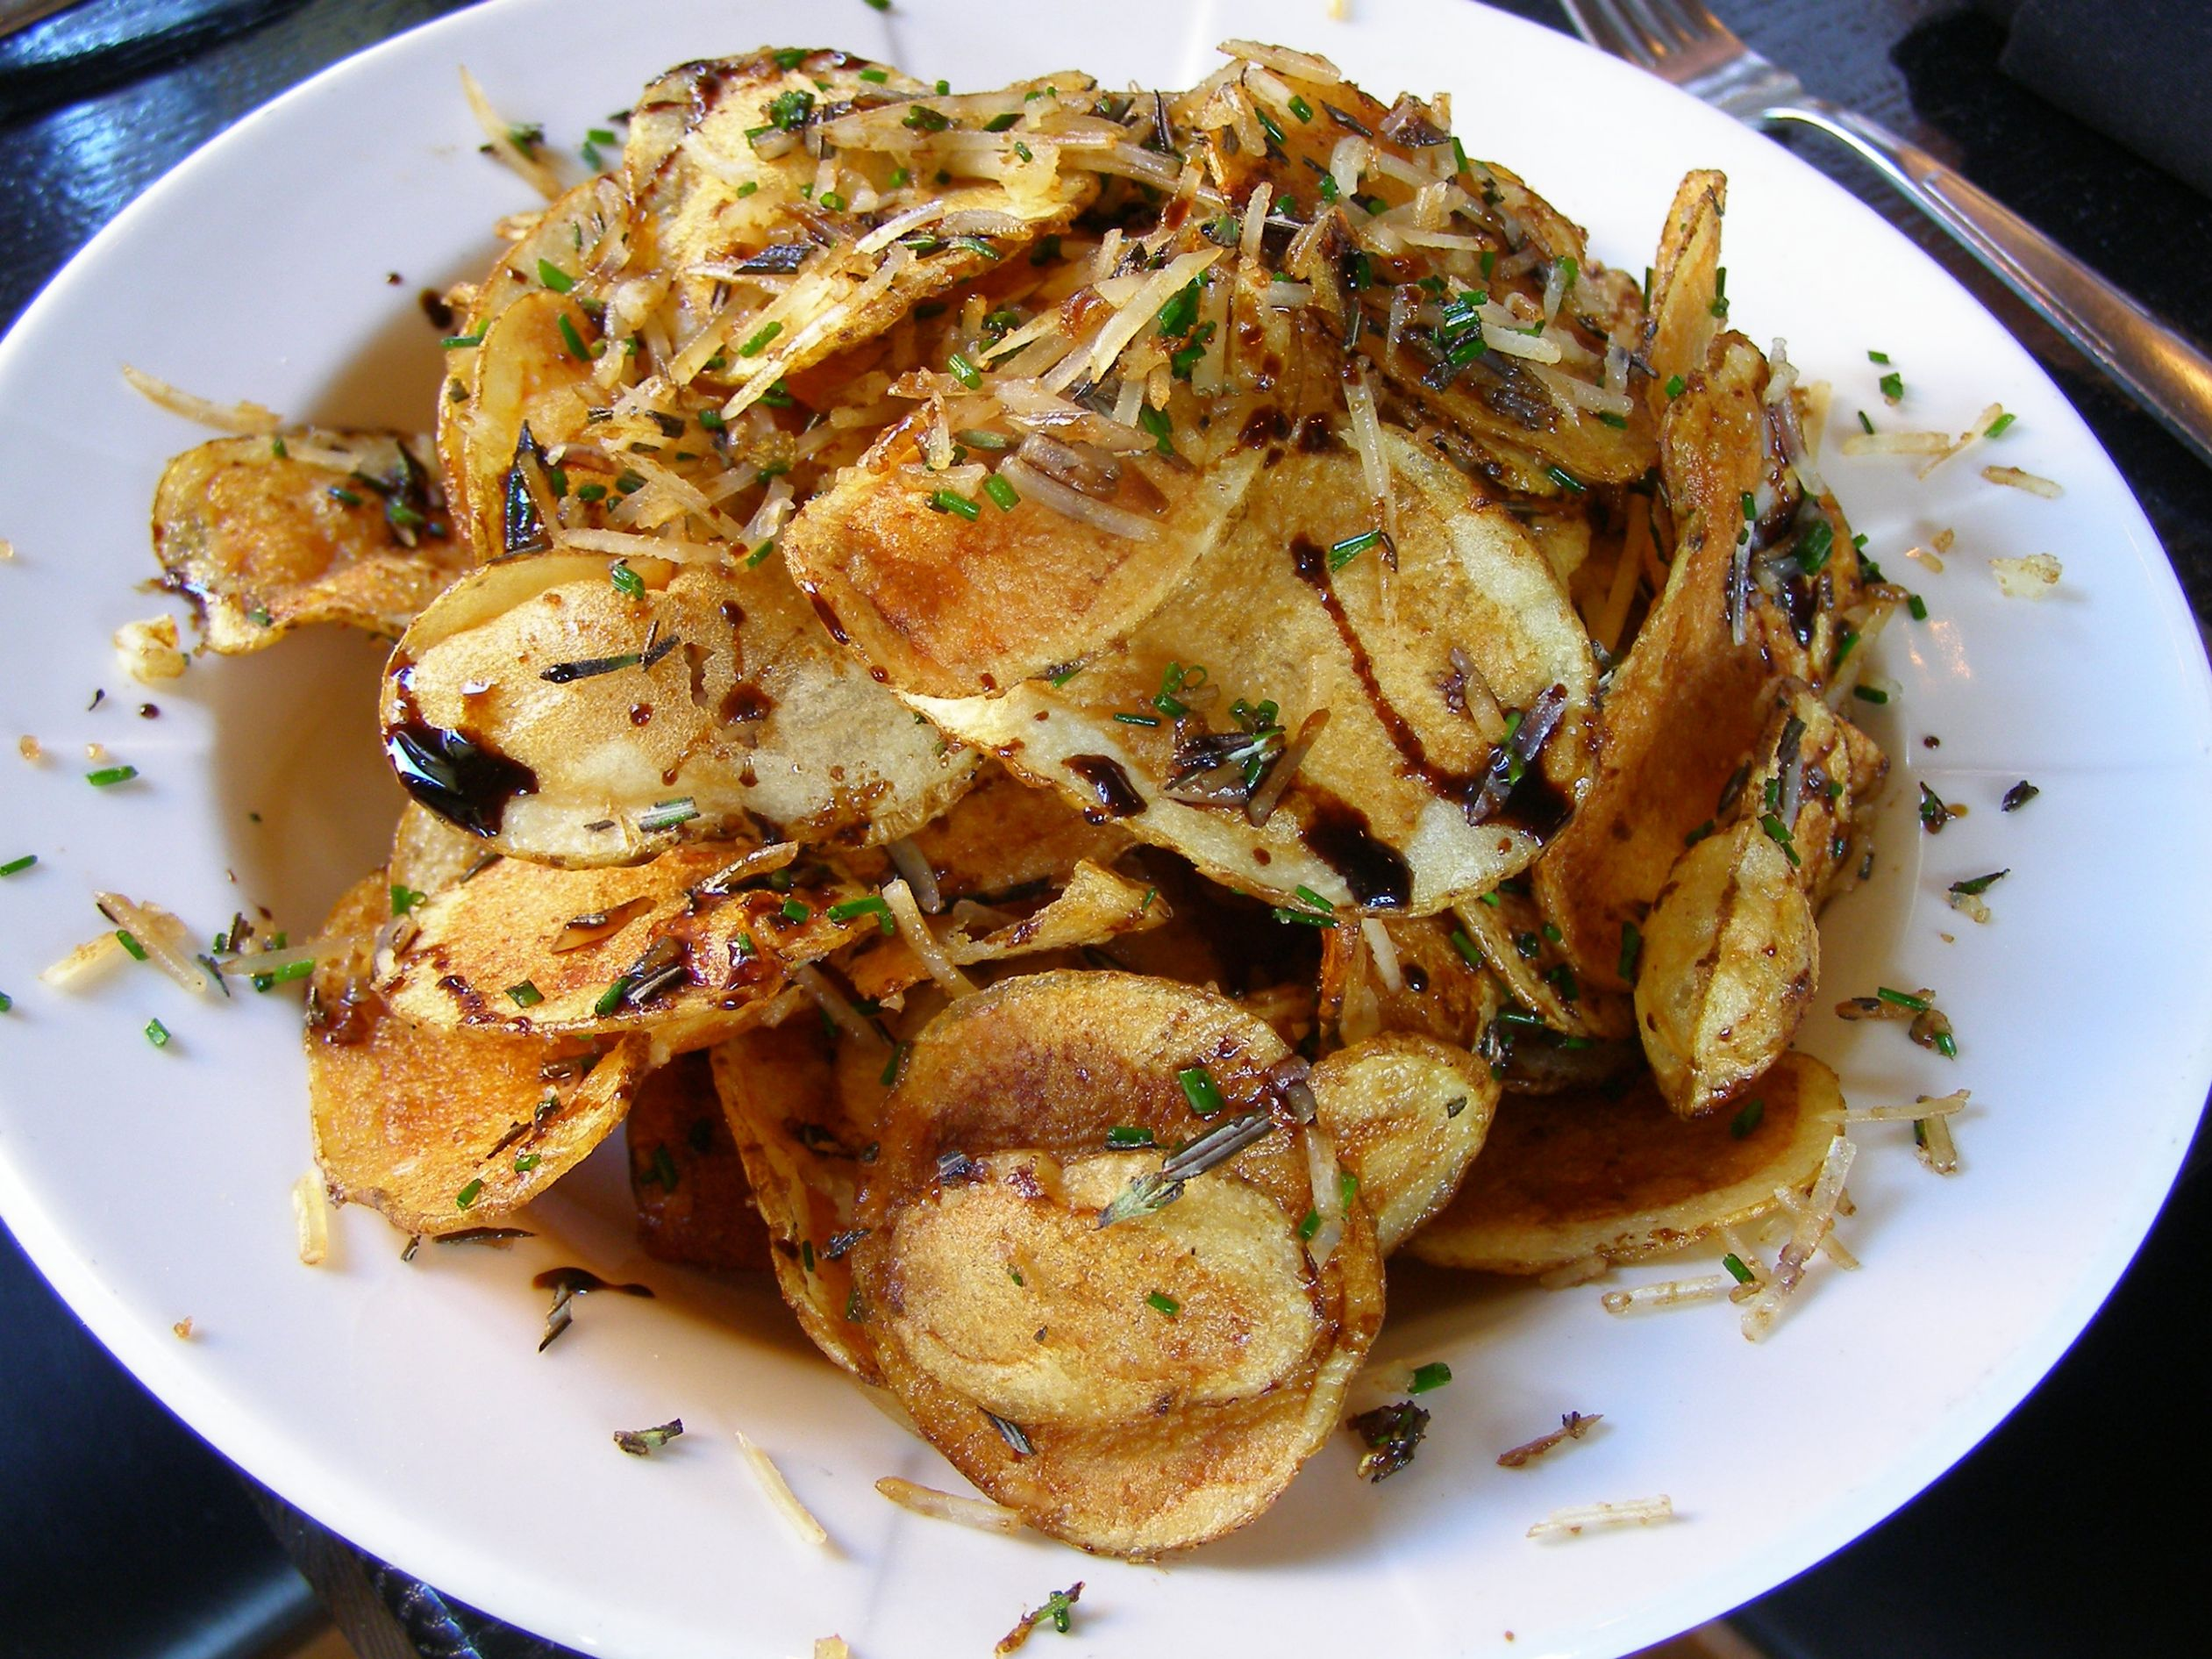 West Town Tavern Potato Chips with Parmesan, Rosemary, Balsamic Syrup and  White Truffle Oil - Recipes Using Potato Chips